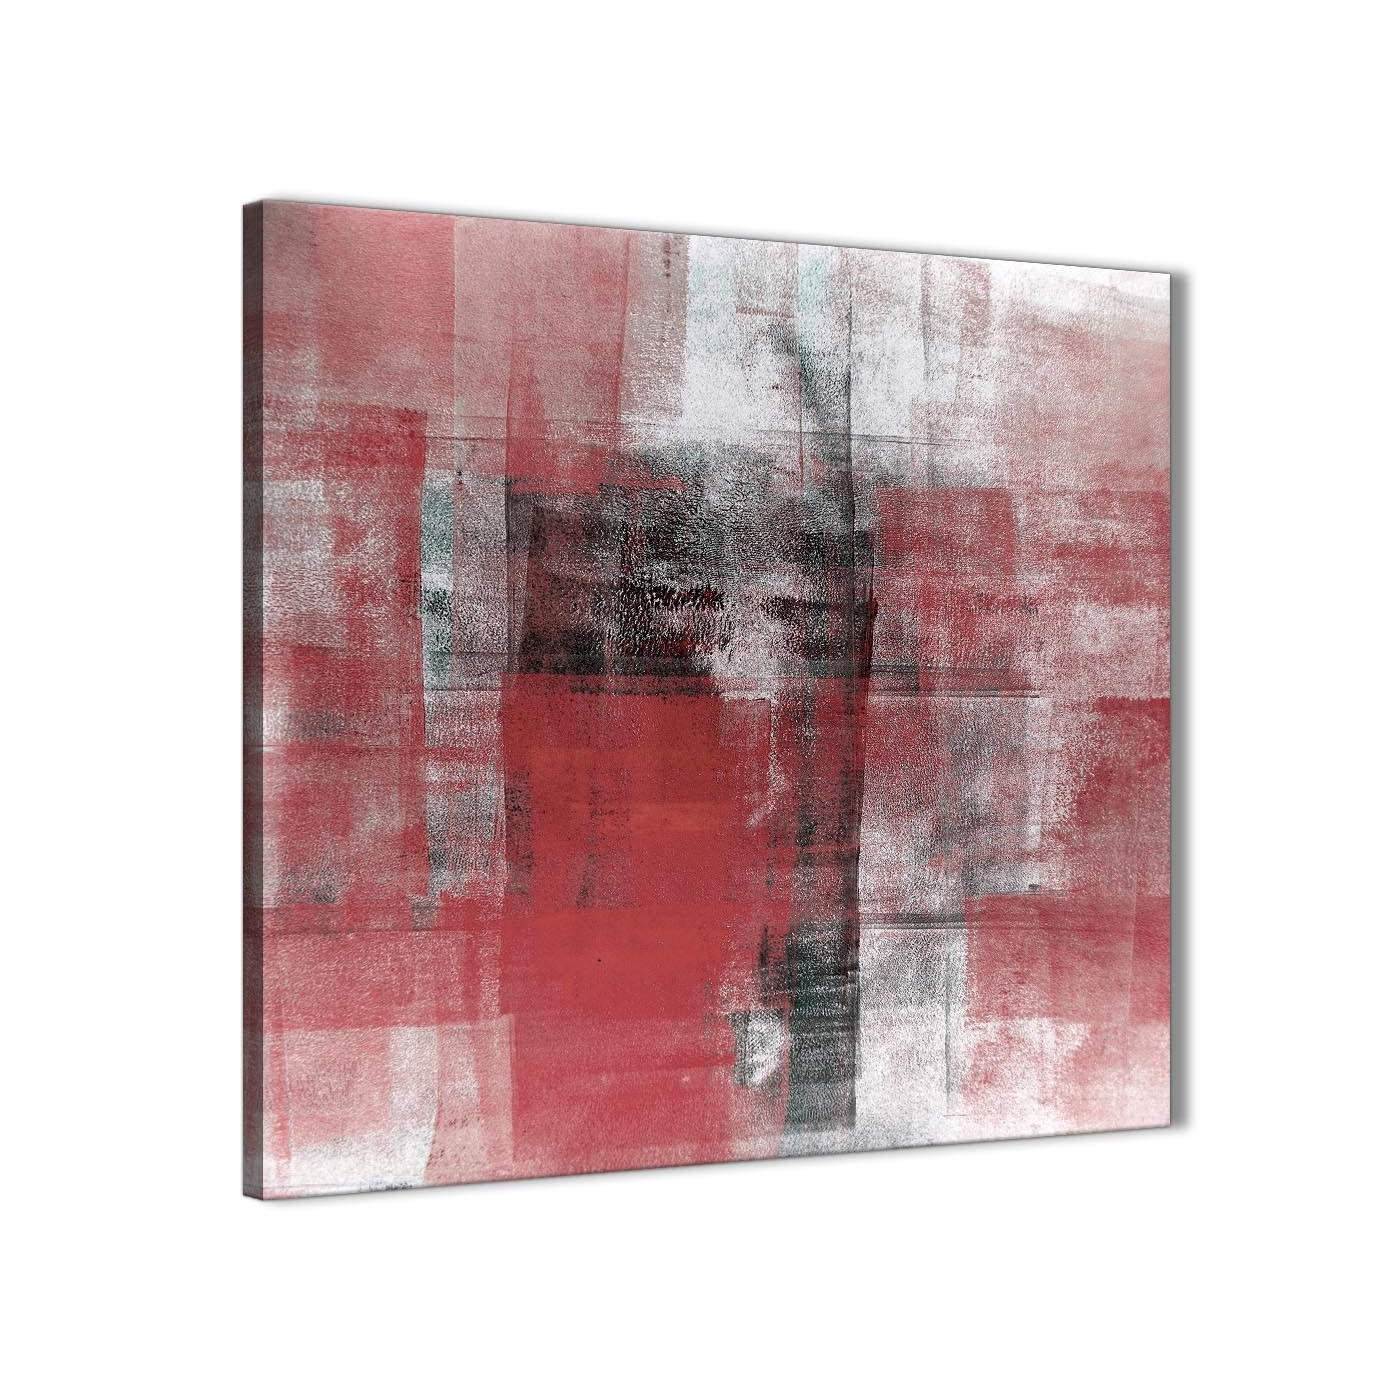 Red Black White Painting Stairway Canvas Pictures Decorations With Regard To Most Popular Kitchen Canvas Wall Art Decors (View 20 of 20)